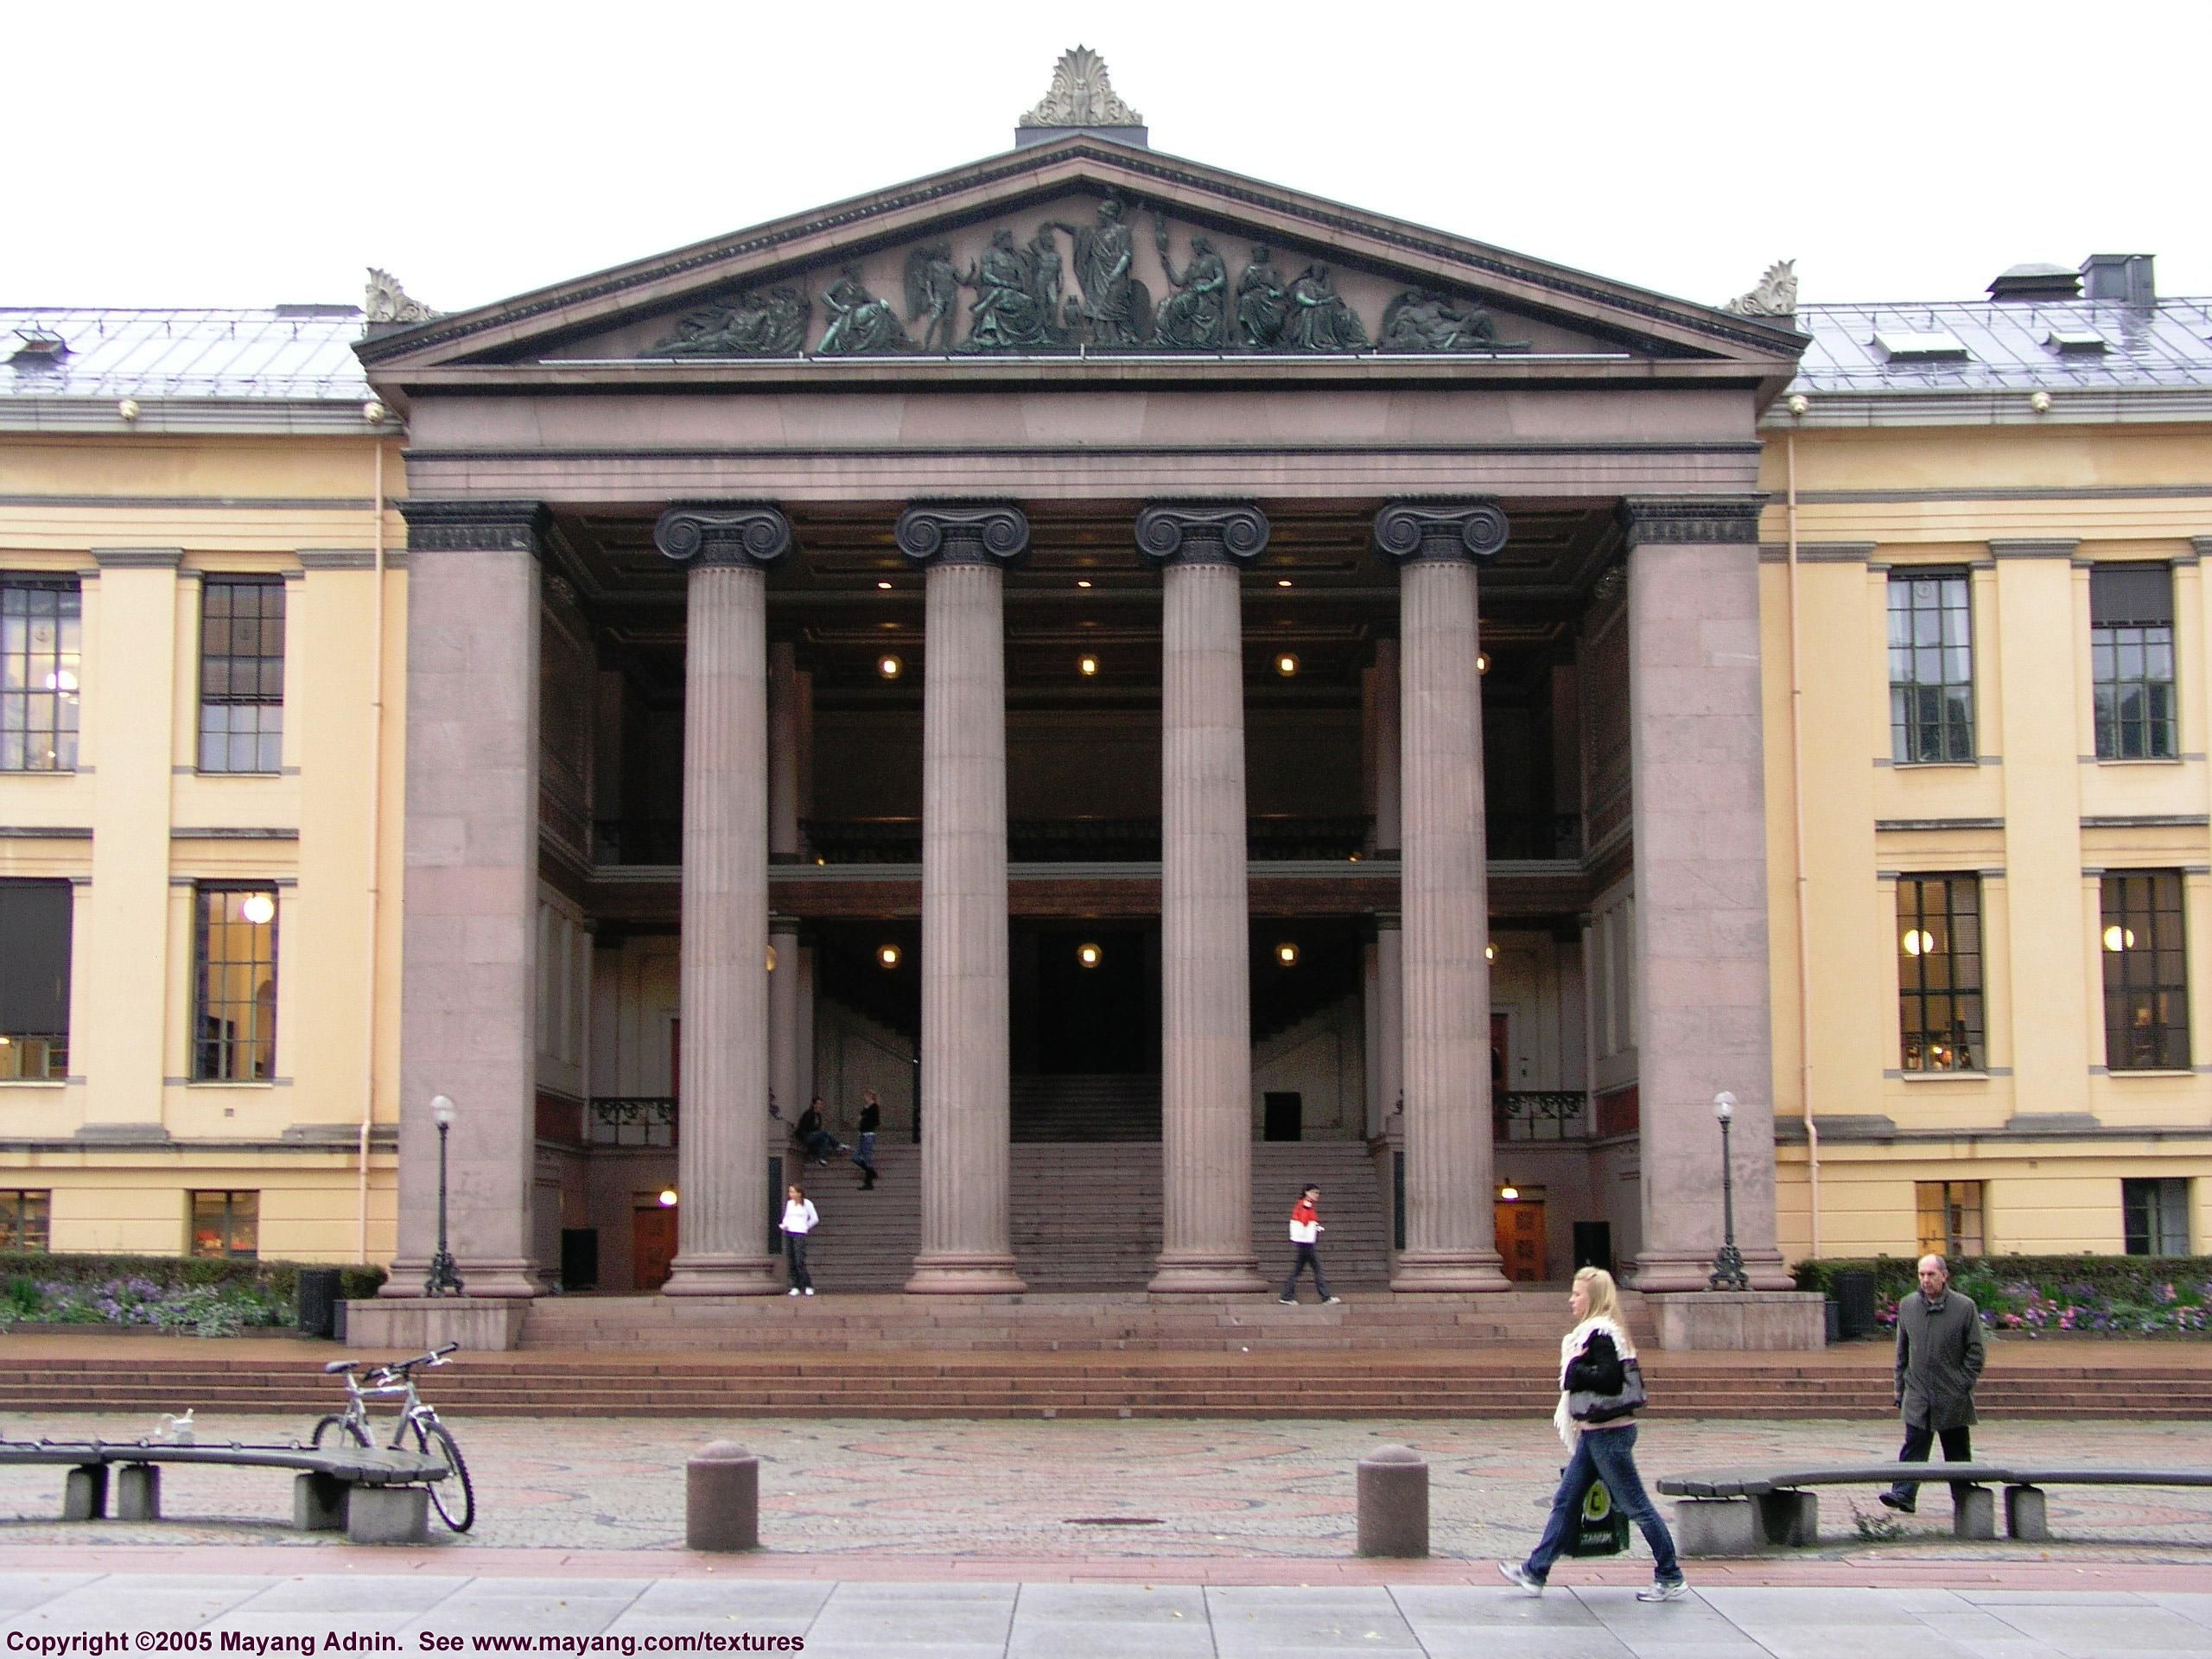 Modern Greek Architecture the oslo trading building in norway inspiredthe historical